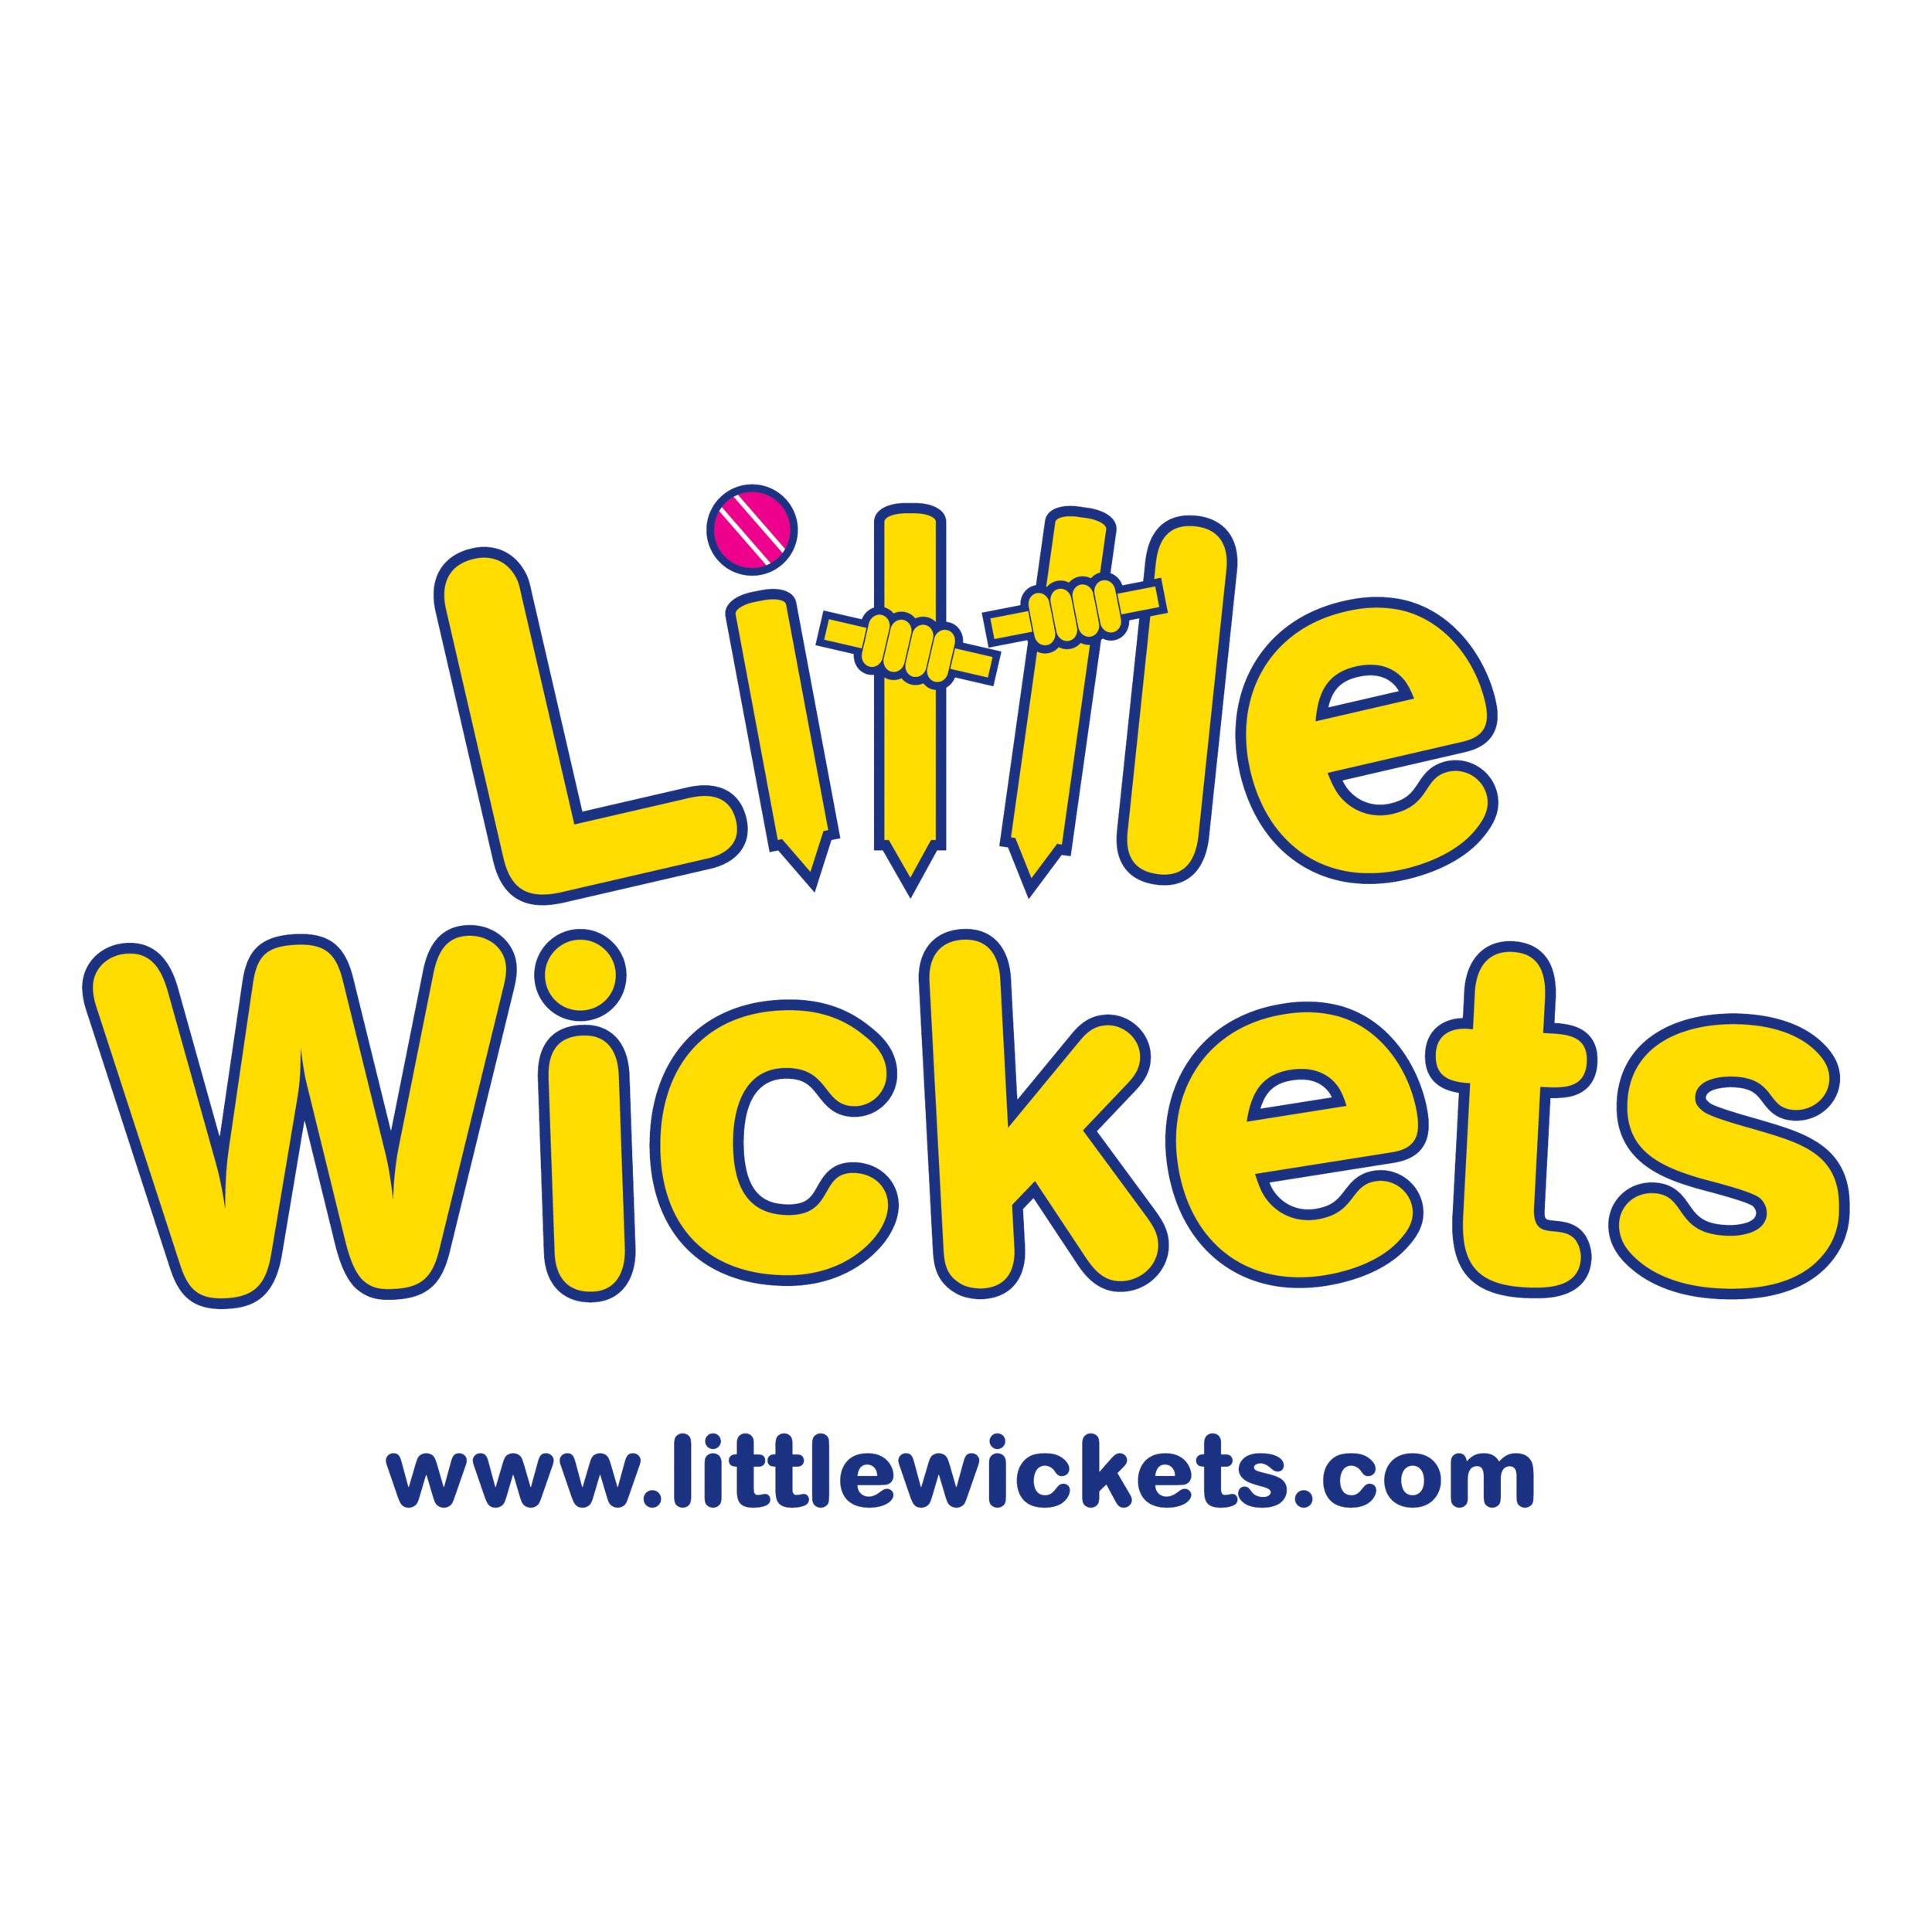 Little Wickets Logo square.png